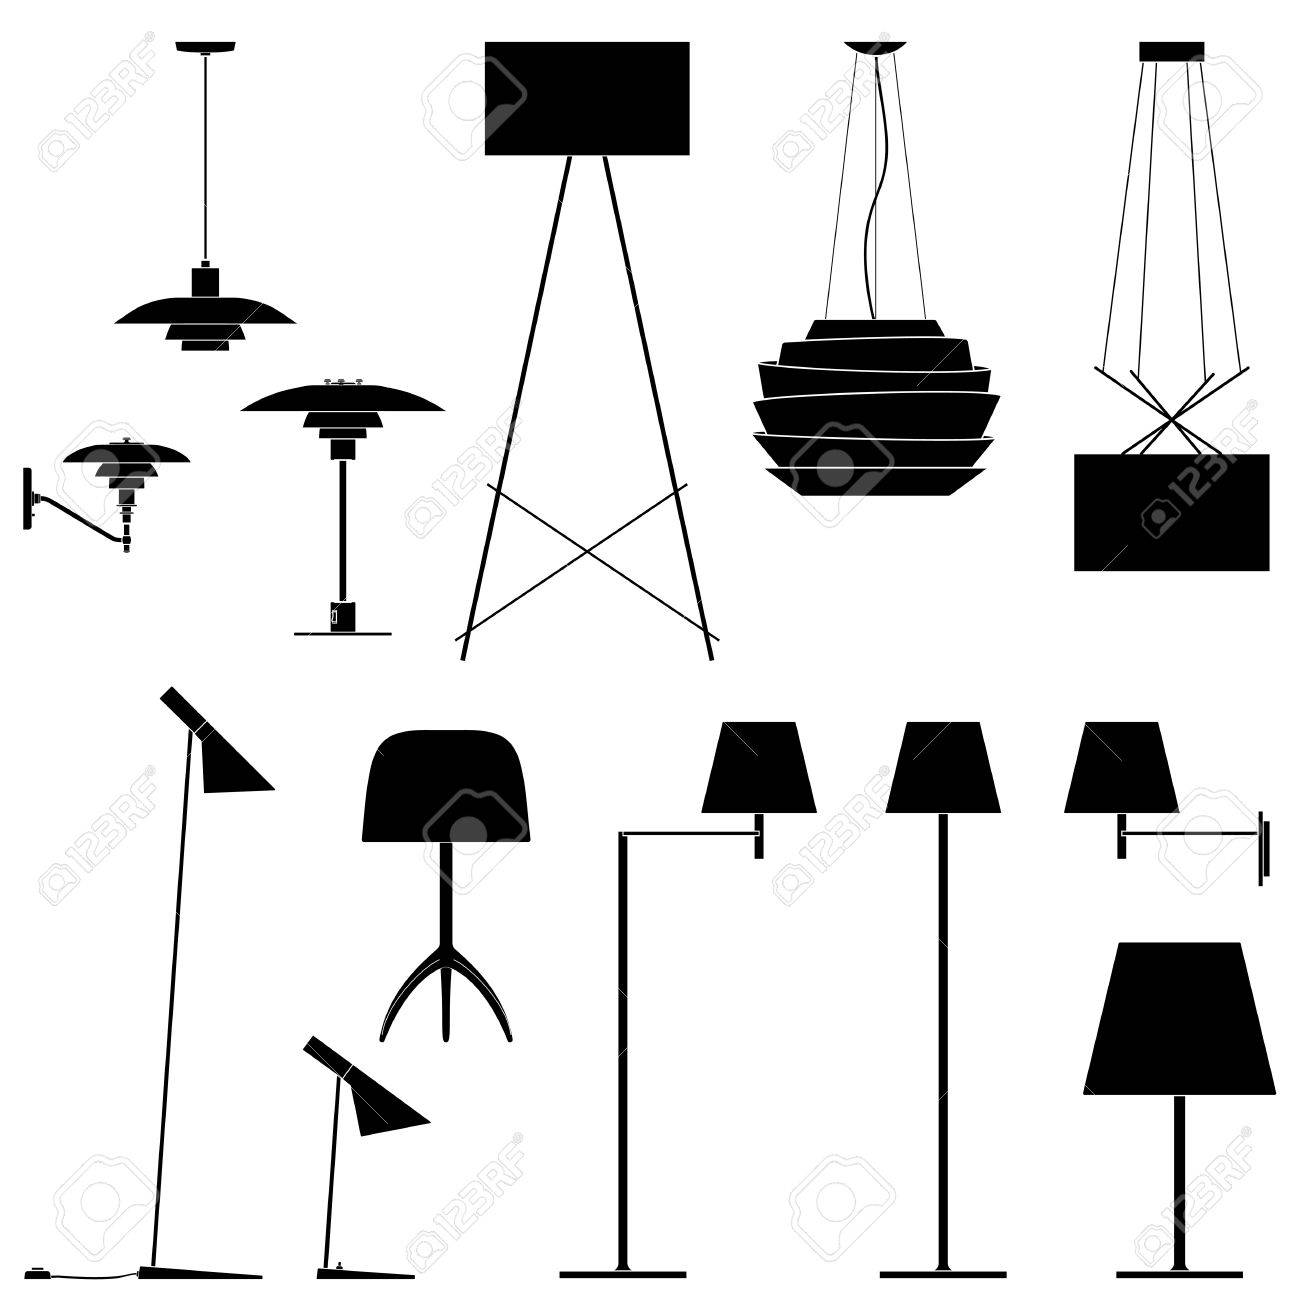 Set of different lamps. Black silhouette of floor lamps, table lamps and sconce. Vector illustration EPS10 - 48861069